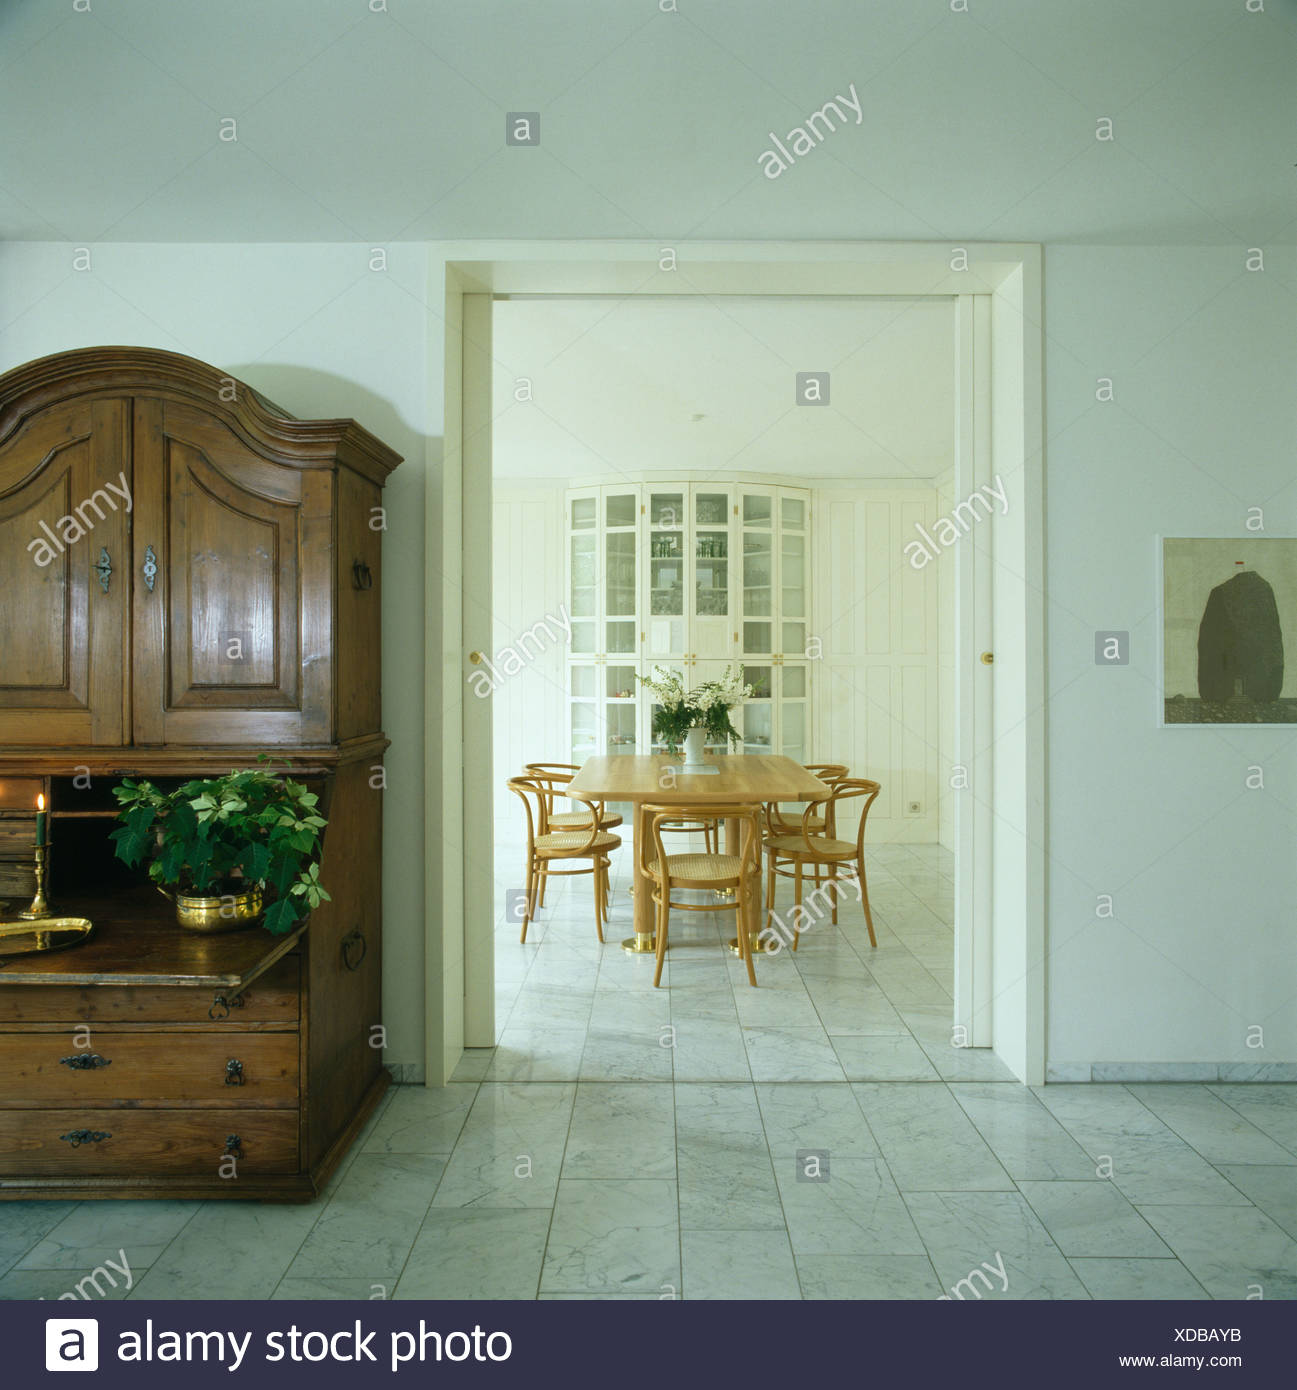 Antique cupboard in modern white hall with marble tiled floor and with view  of dining room through open double doors - Antique Cupboard In Modern White Hall With Marble Tiled Floor And